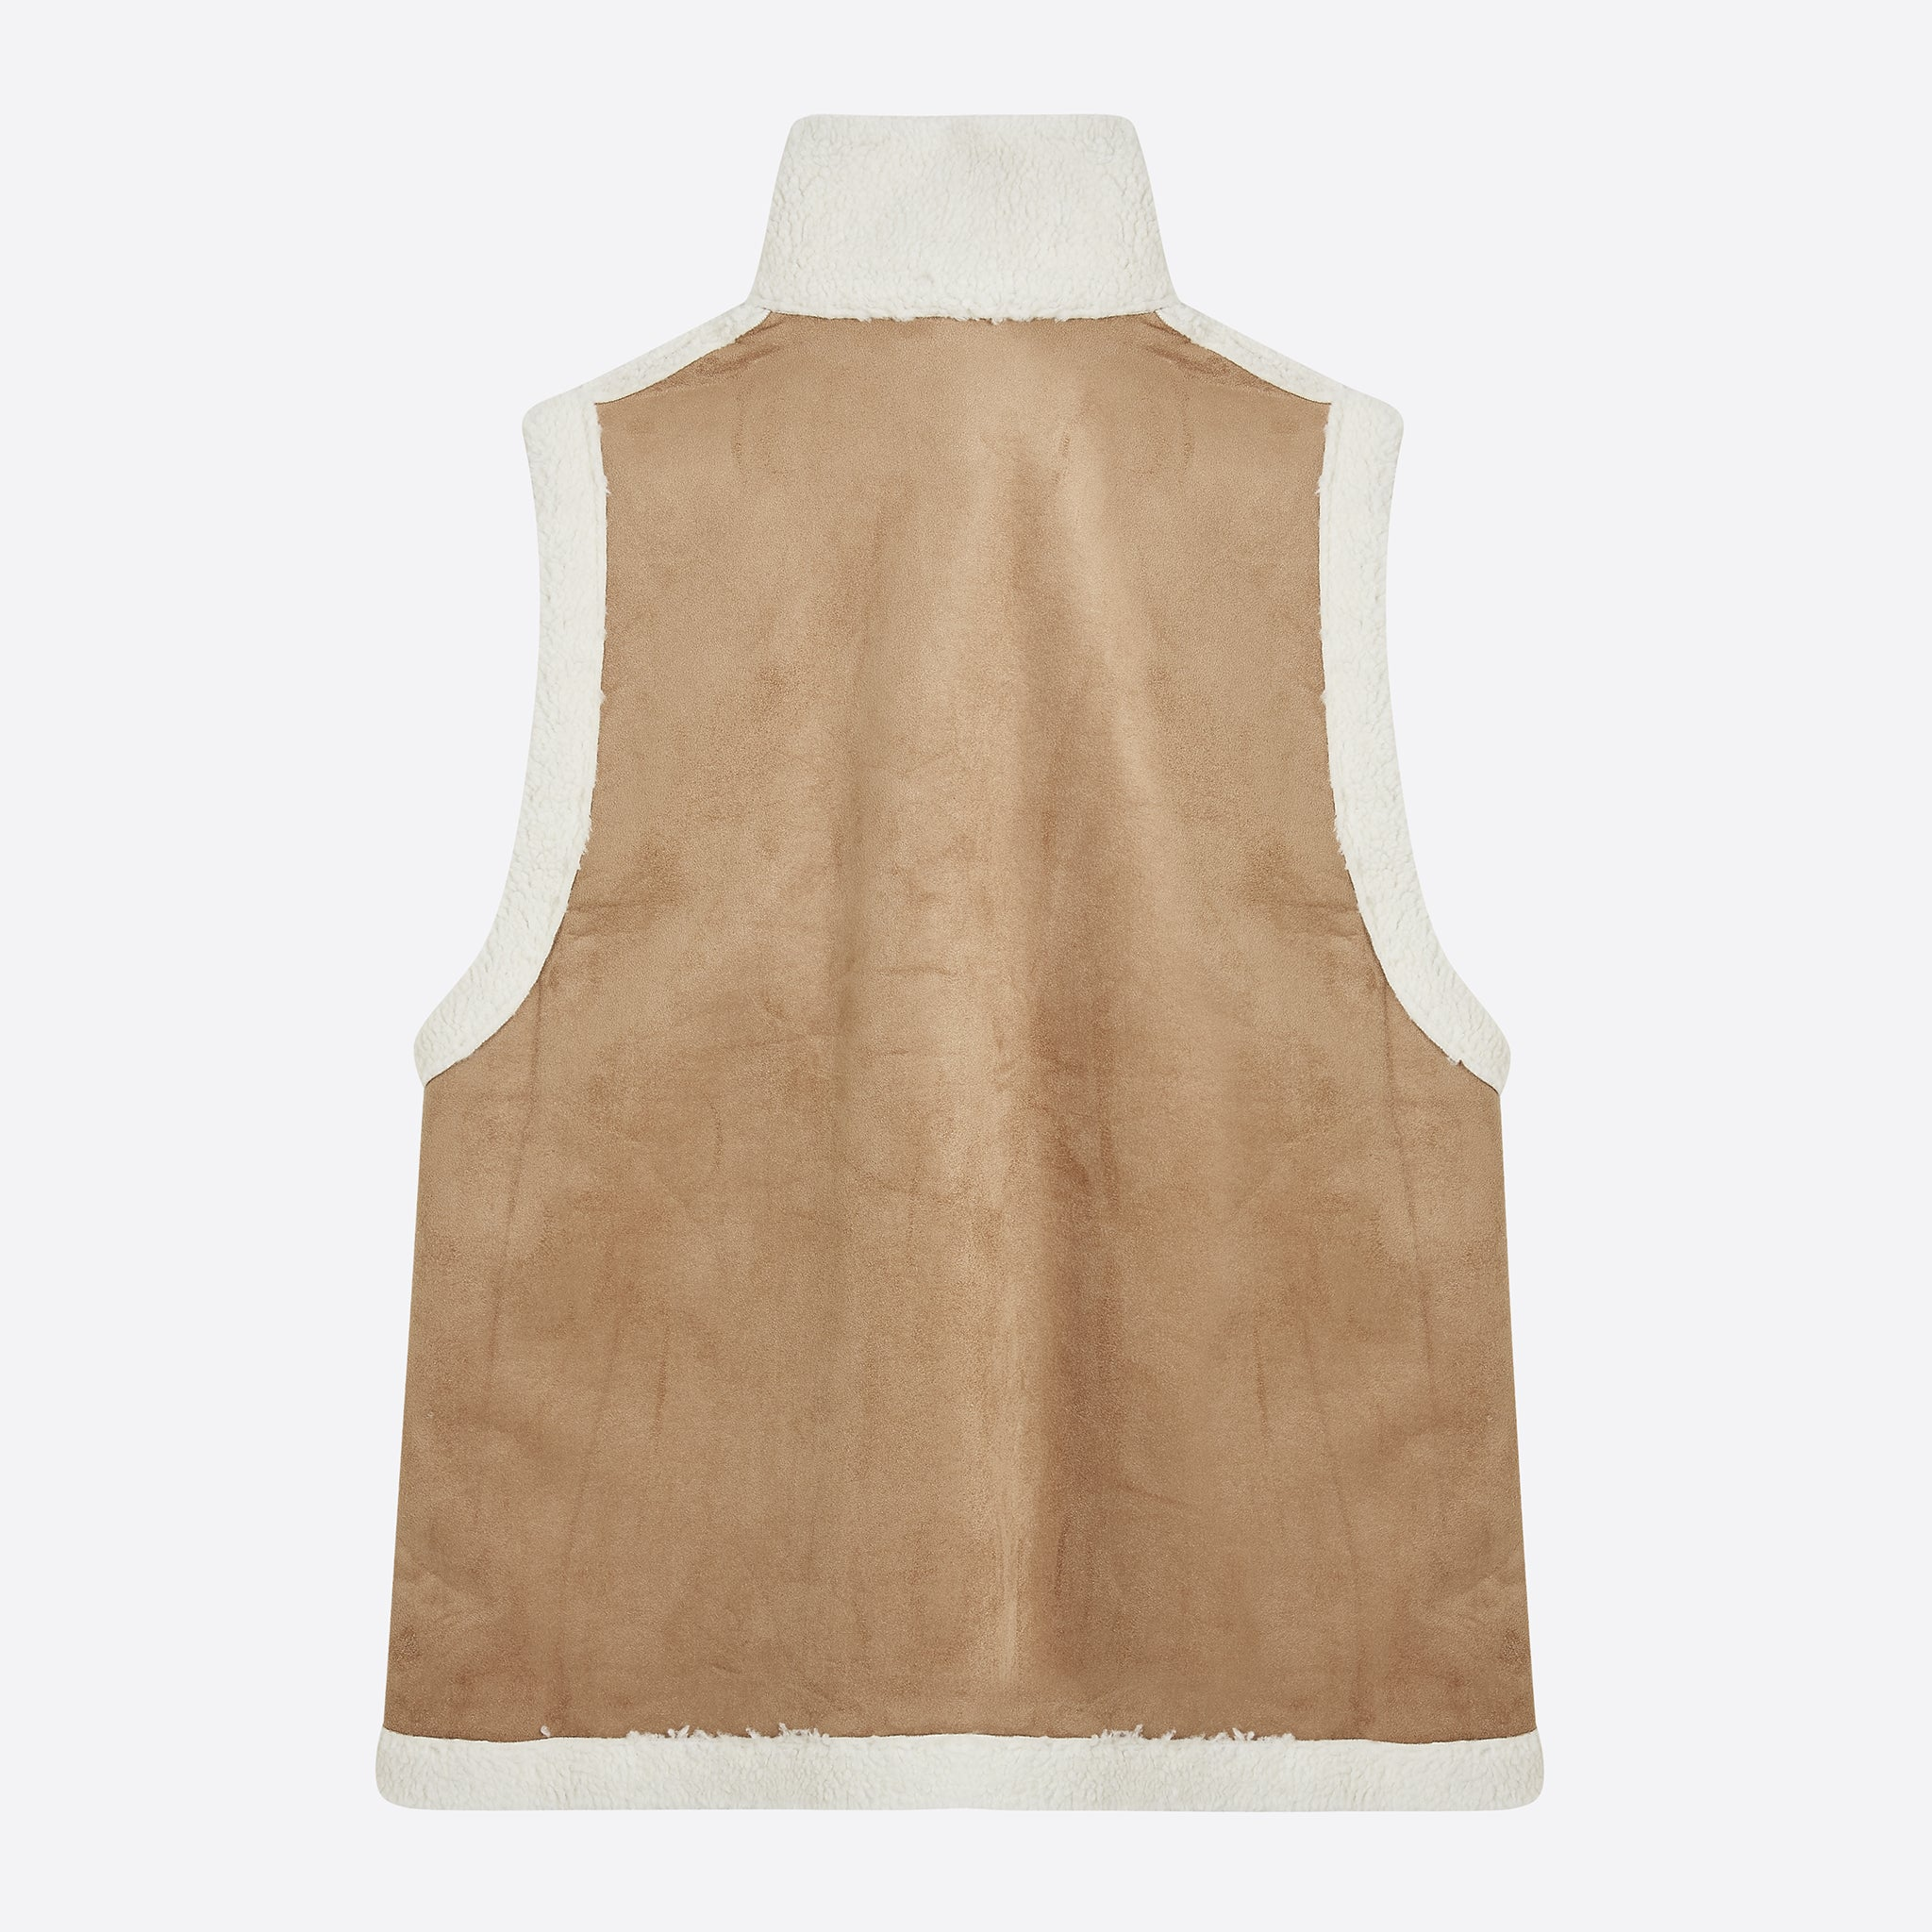 Mr Larkin Jade Vest in Natural